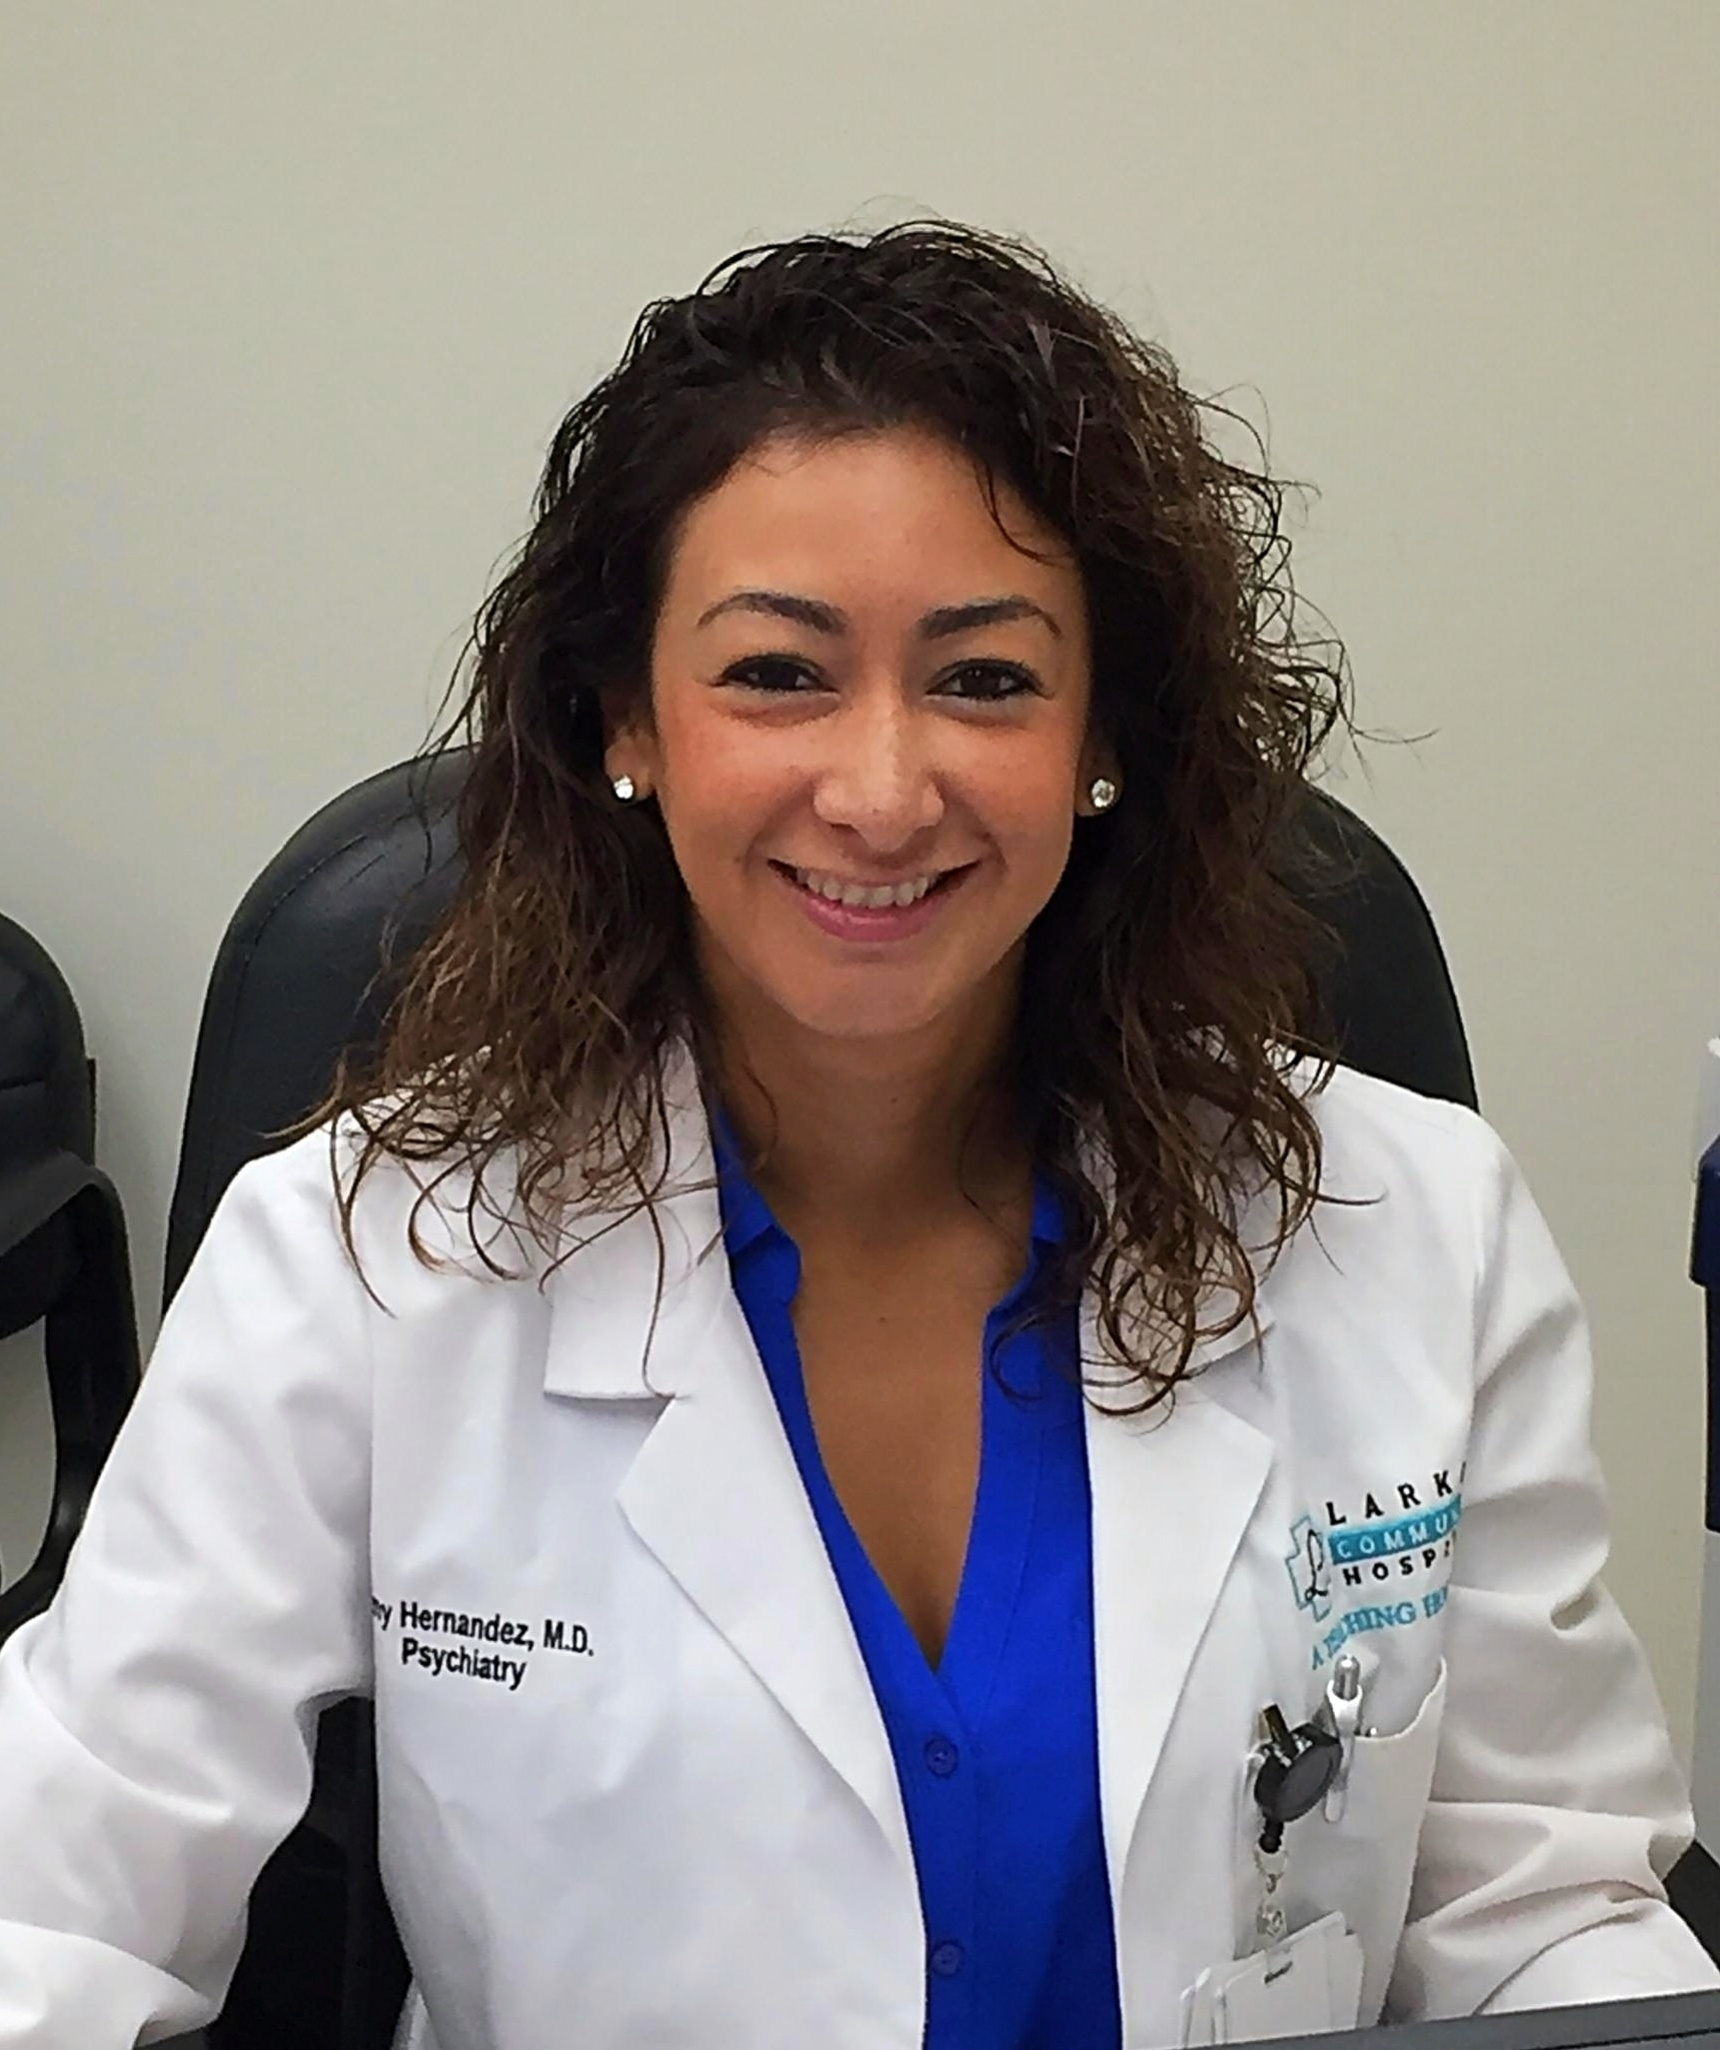 Trinity School of Medicine Alumni Spotlight: Dr. Amy Hernandez, Trinity Class of 2012